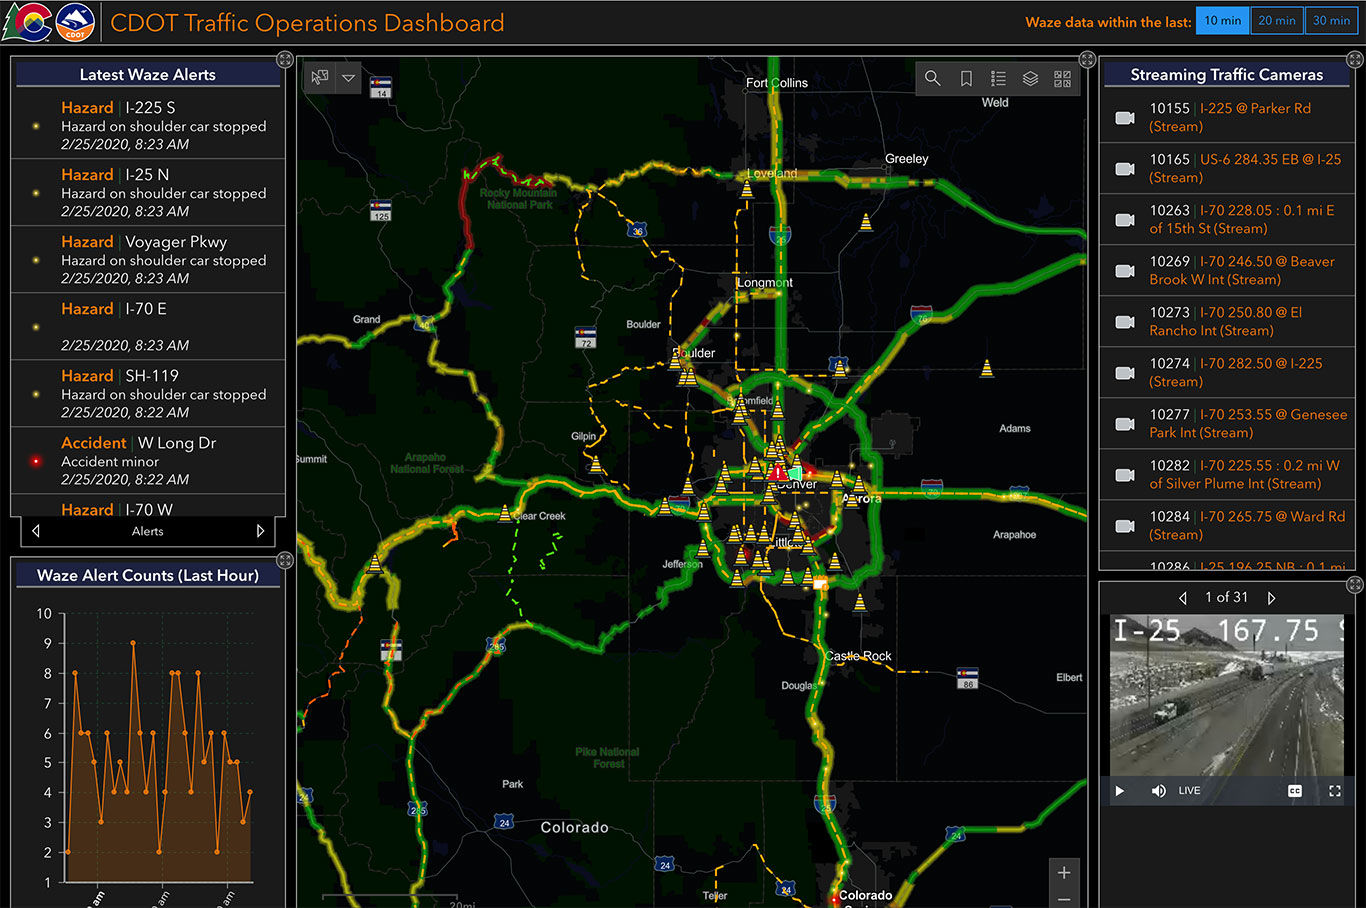 CDOT Traffic Operations Dashboard